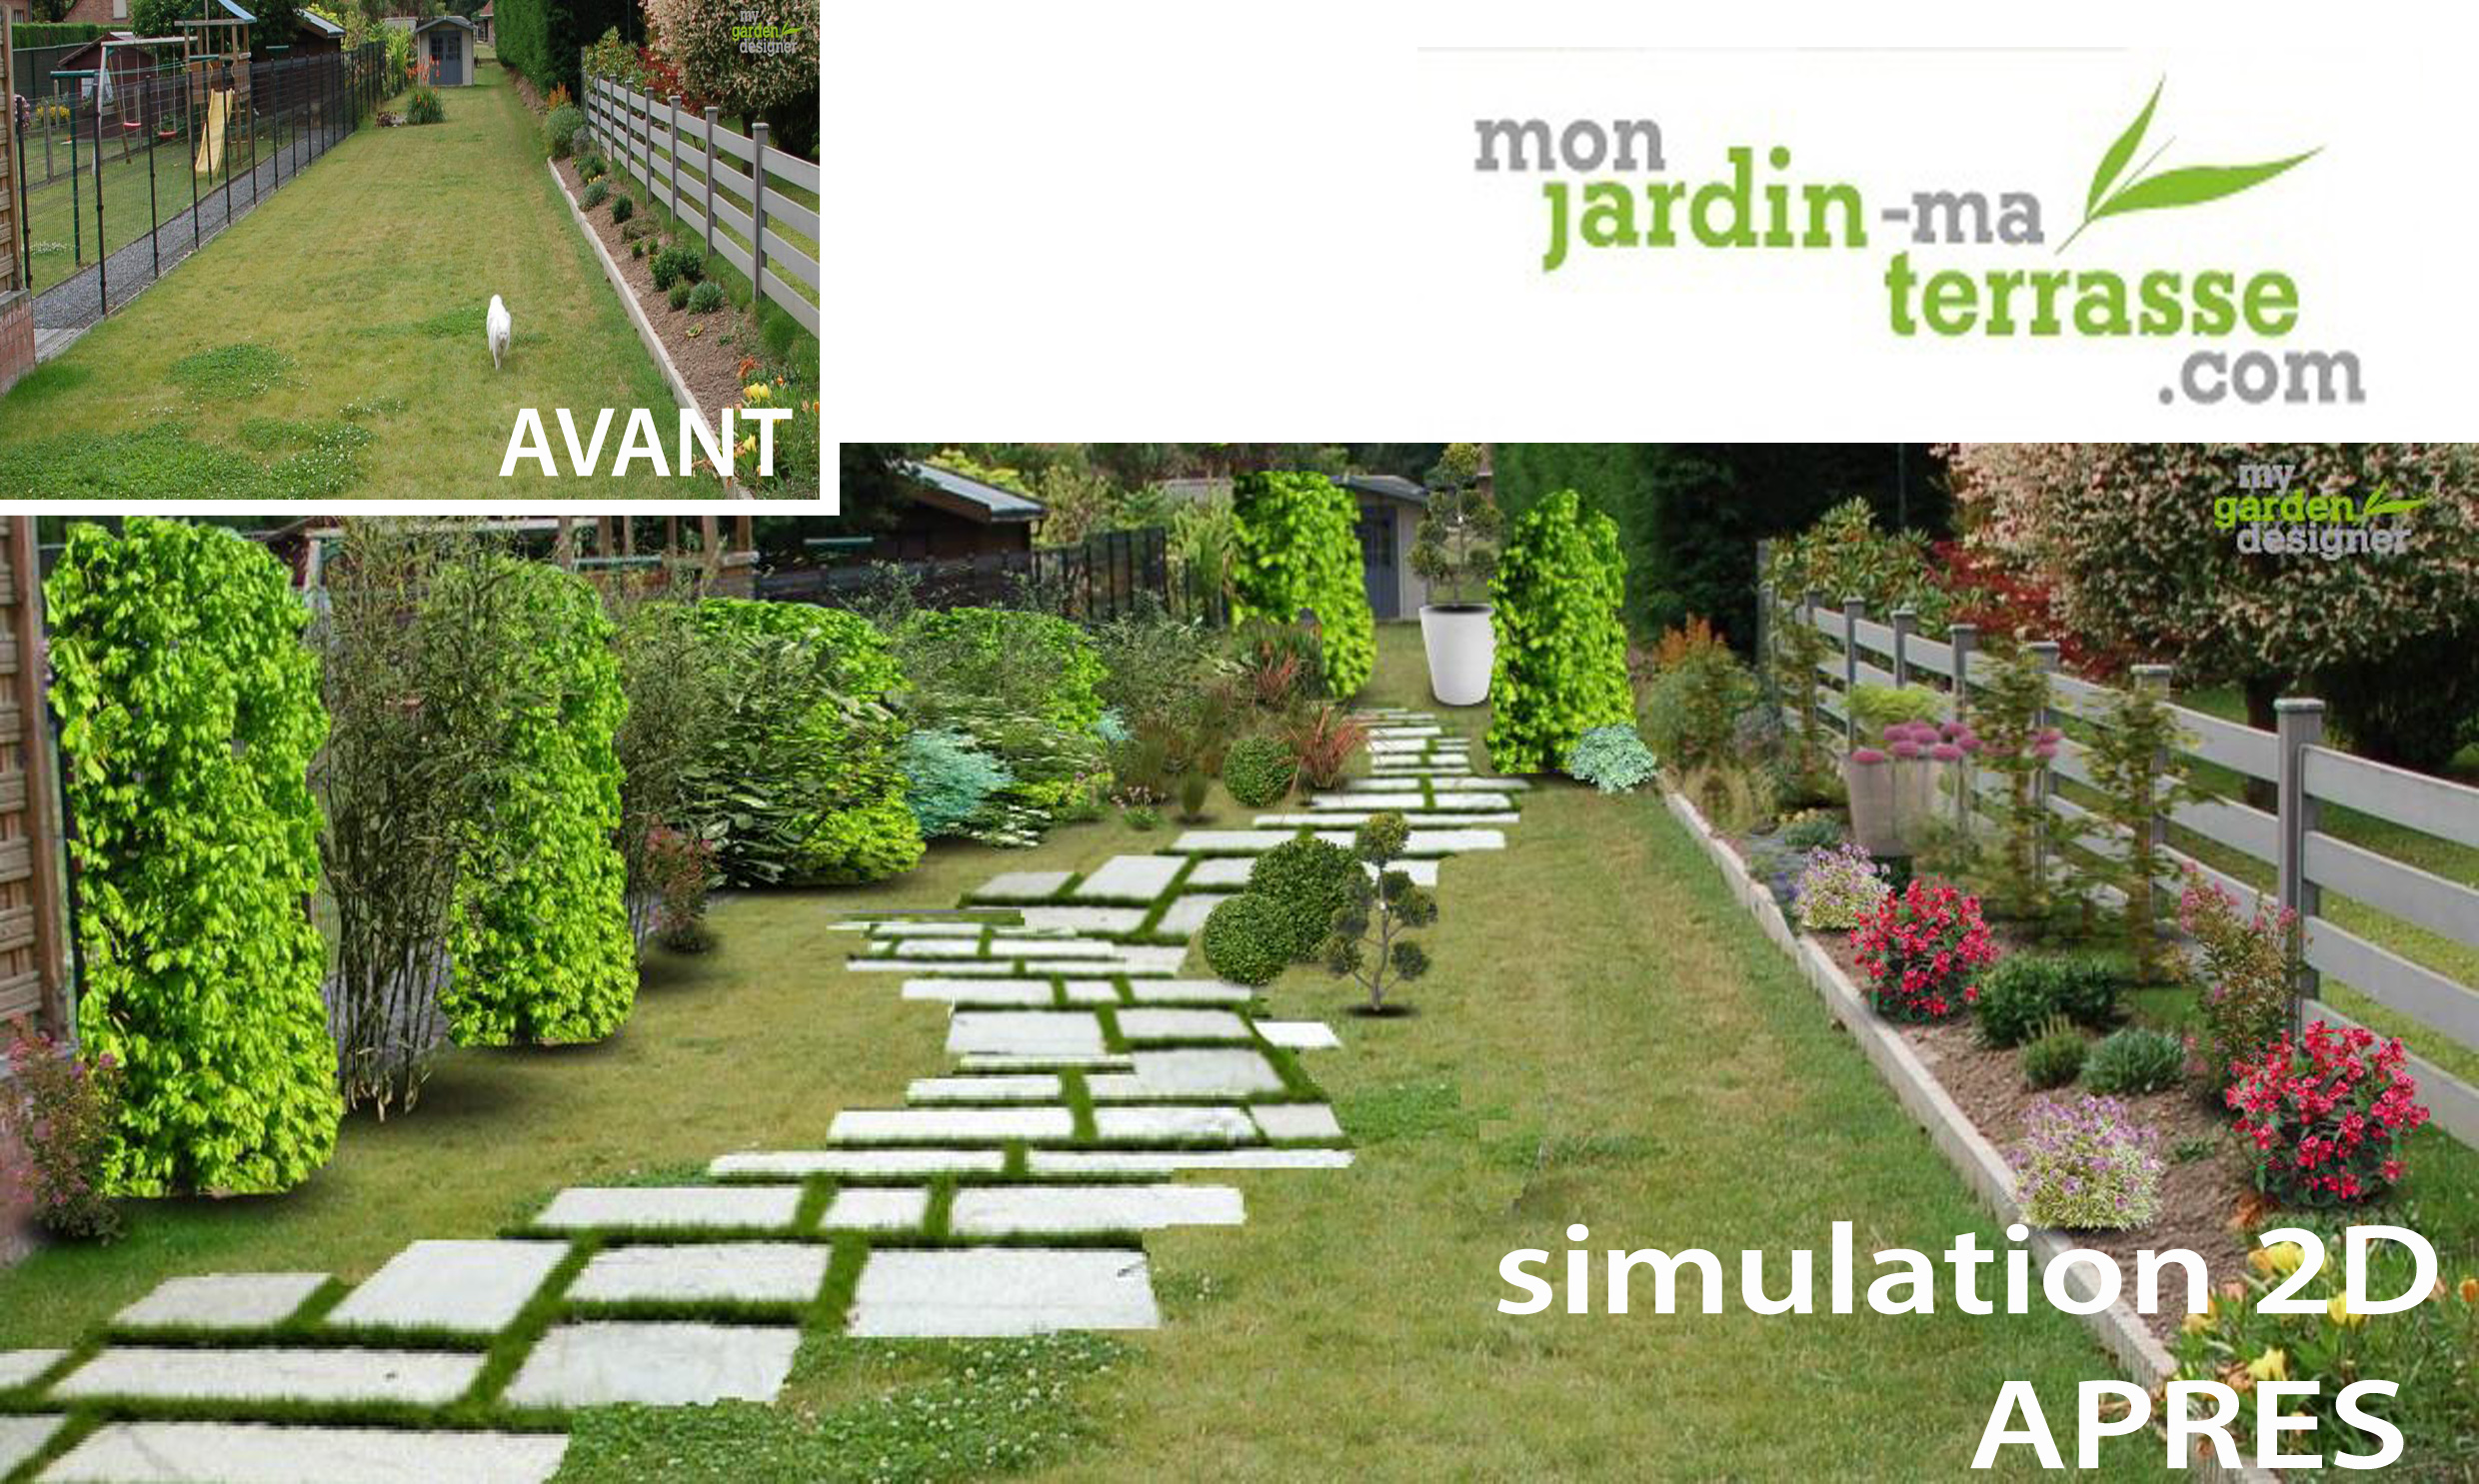 Comment am nager son jardin en longueur monjardin for Amenager son jardin zen